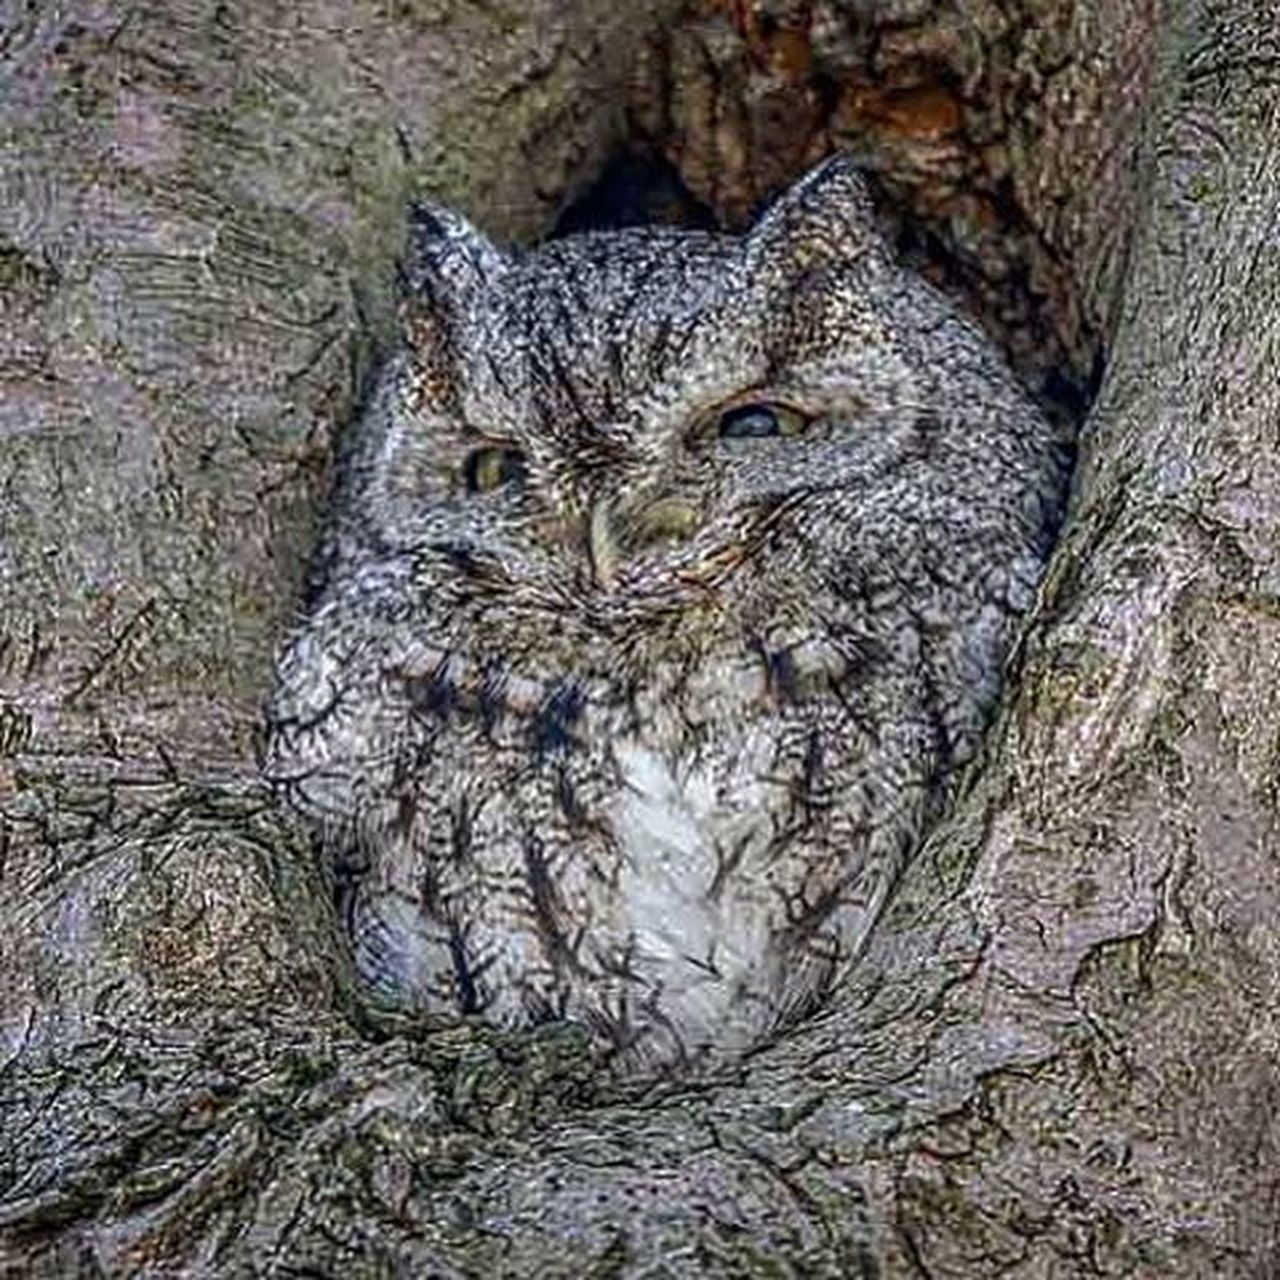 Almost didn't see this Owl . It blended in with the tree perfectly. Only_raptors Birdphotography Screechowl Camoflauge Raptor Birdsofprey Crazyeyes Planetbirds Outdooradventures Wildlife Ig_discover_wildlife Photoadventure TeamCanon 7dii Ig_discover_birdslife Bestbirdshots